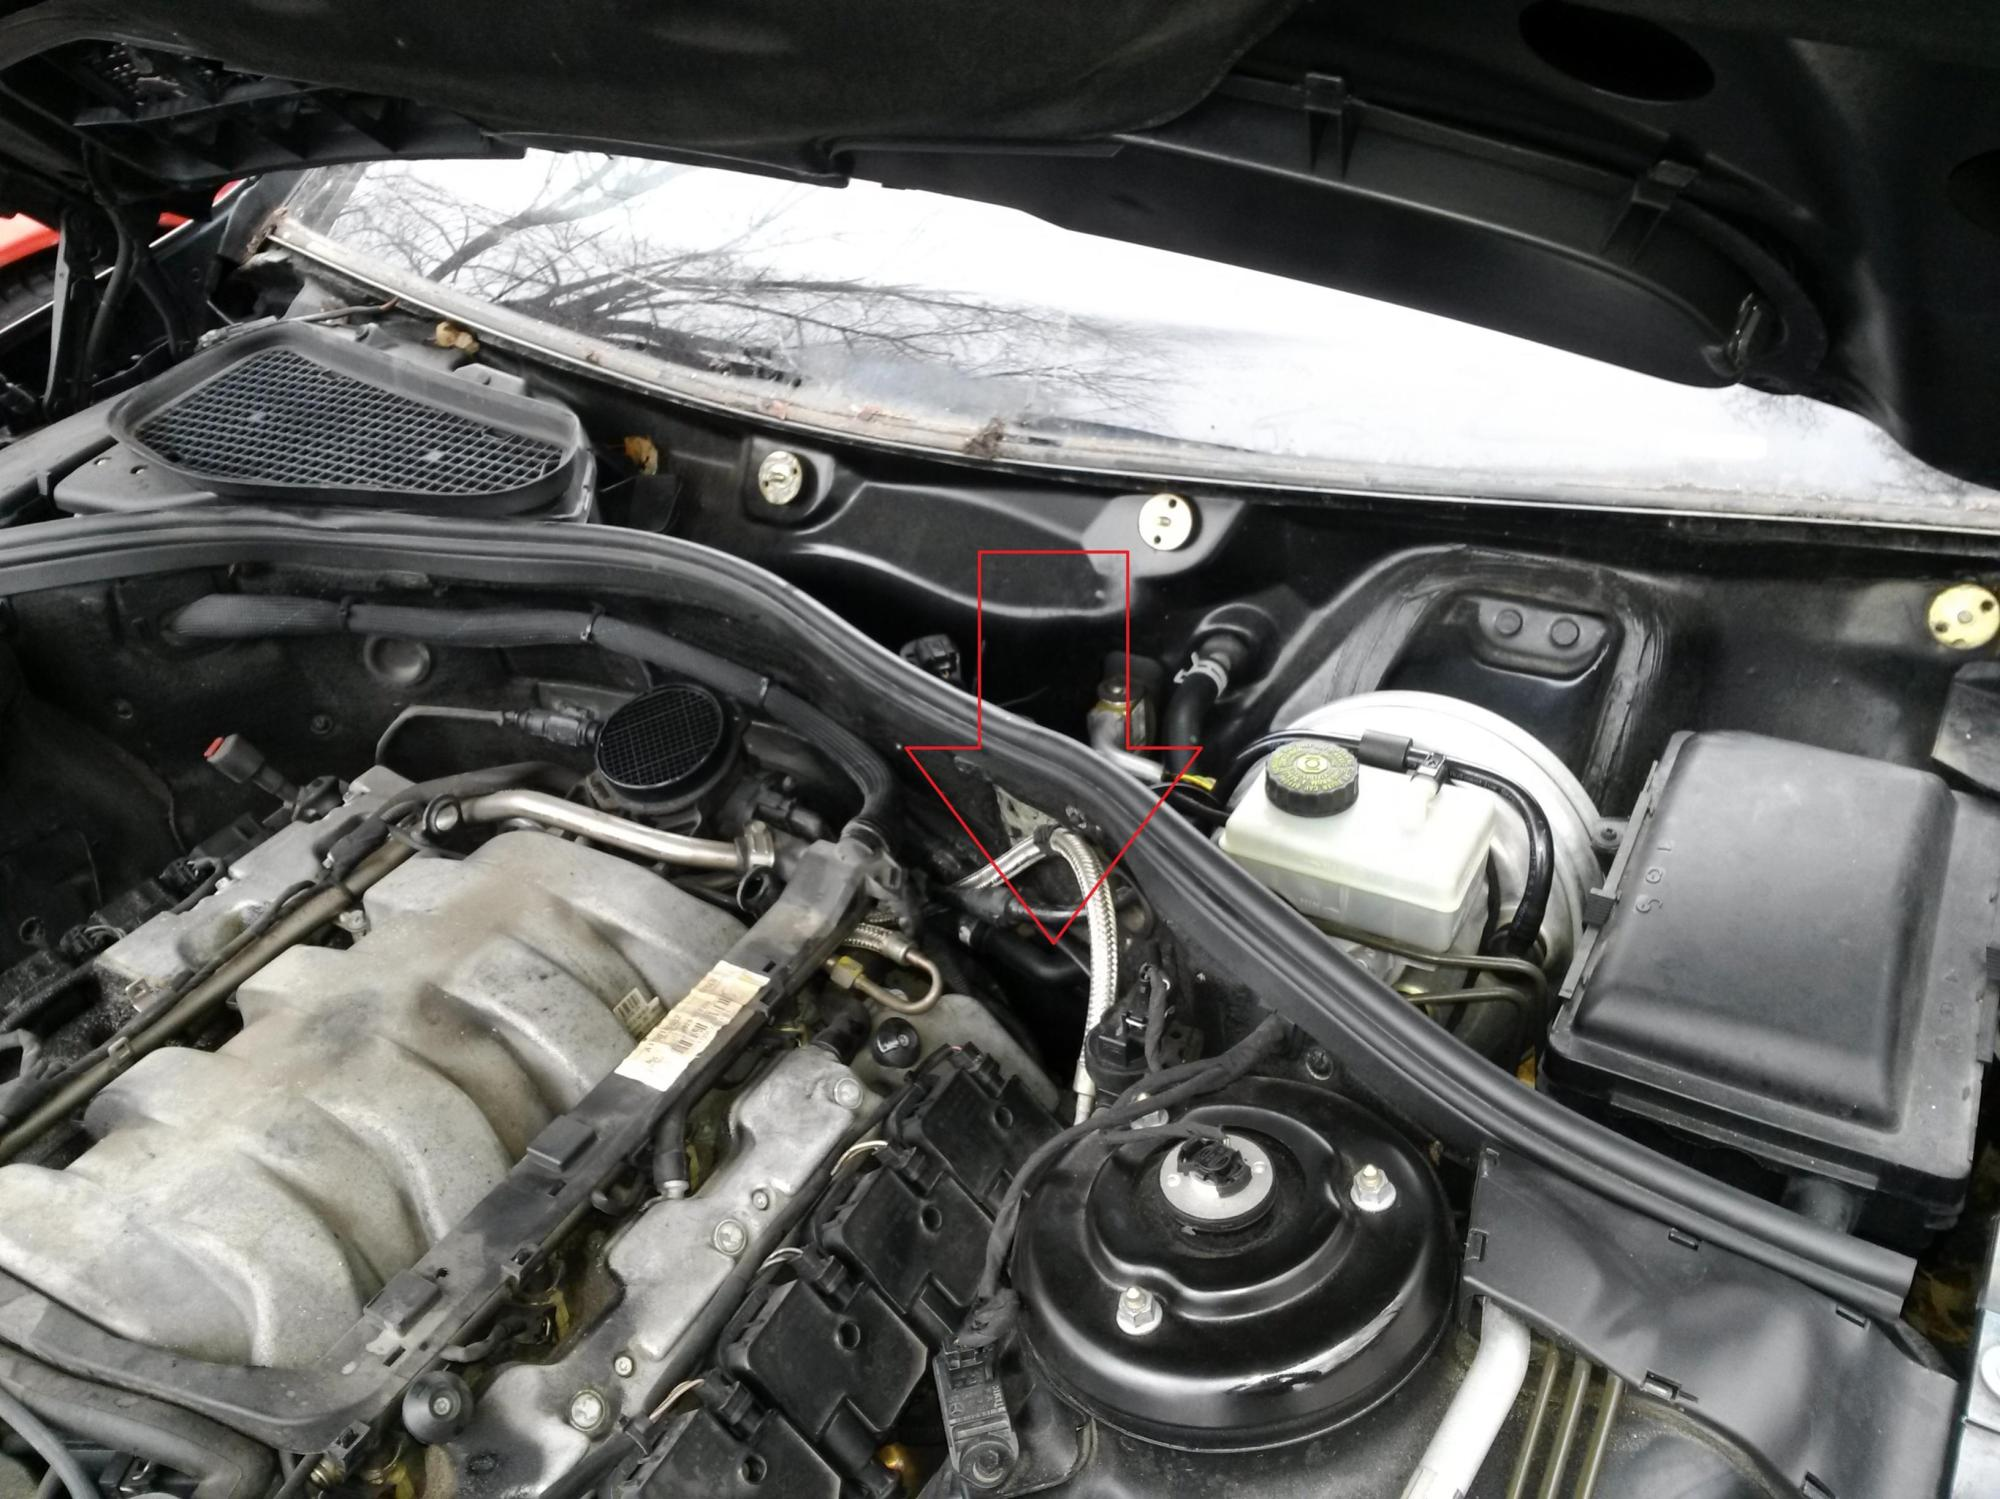 hight resolution of 2002 s500 coolant leak at firewall wp 20141130 009 1 jpg